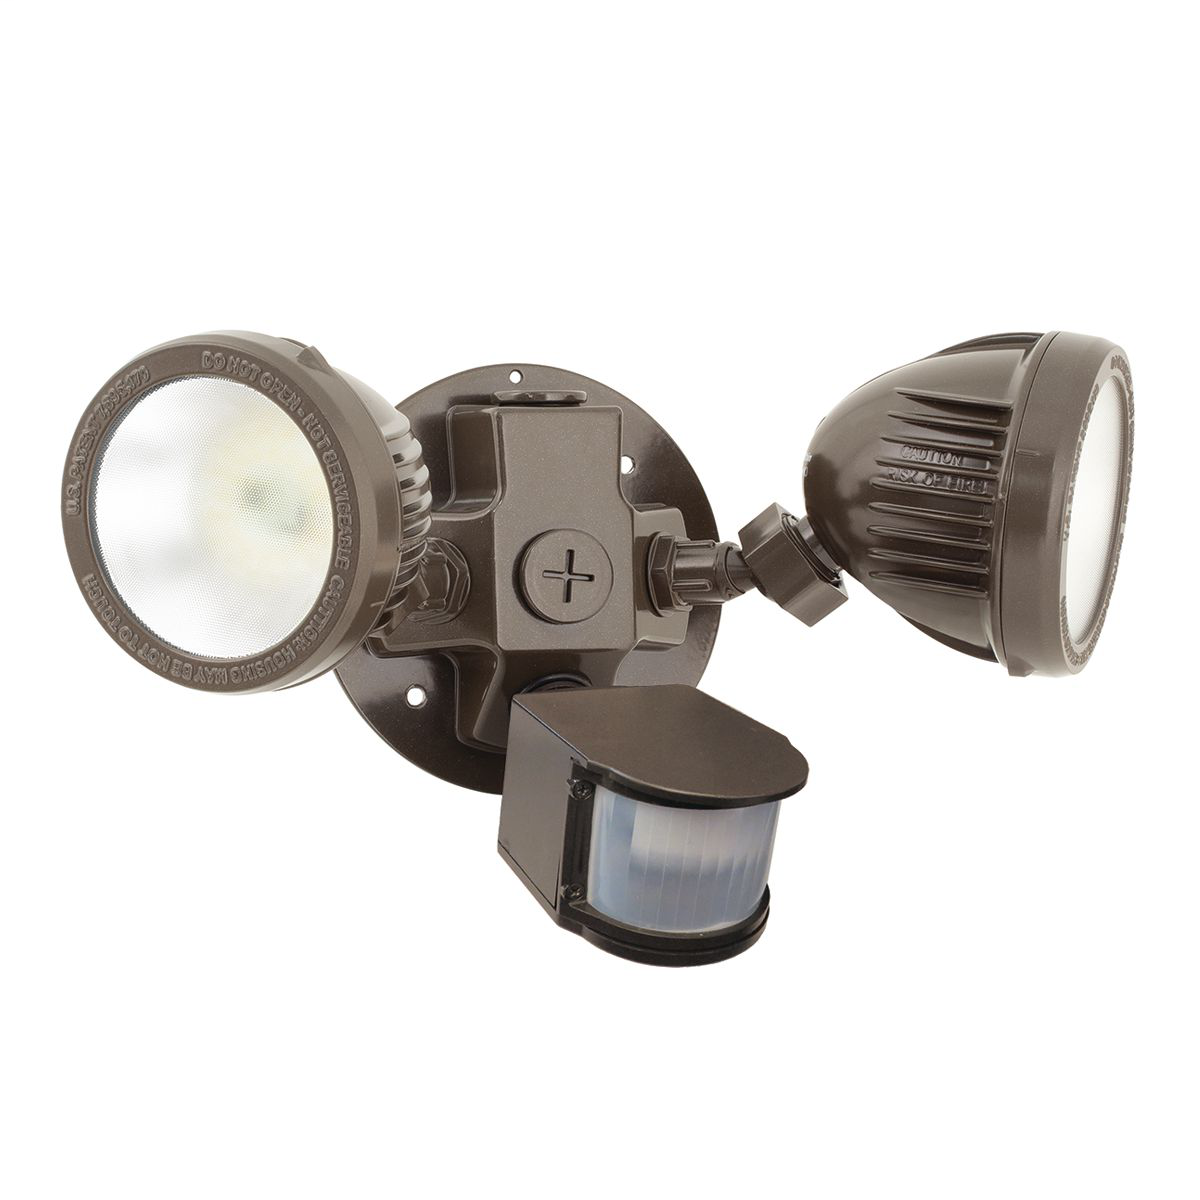 HUBBELL LIGHTING OUTDOOR,ML-2L3K-1-DB,Security floodlight, color: Dark Bronze